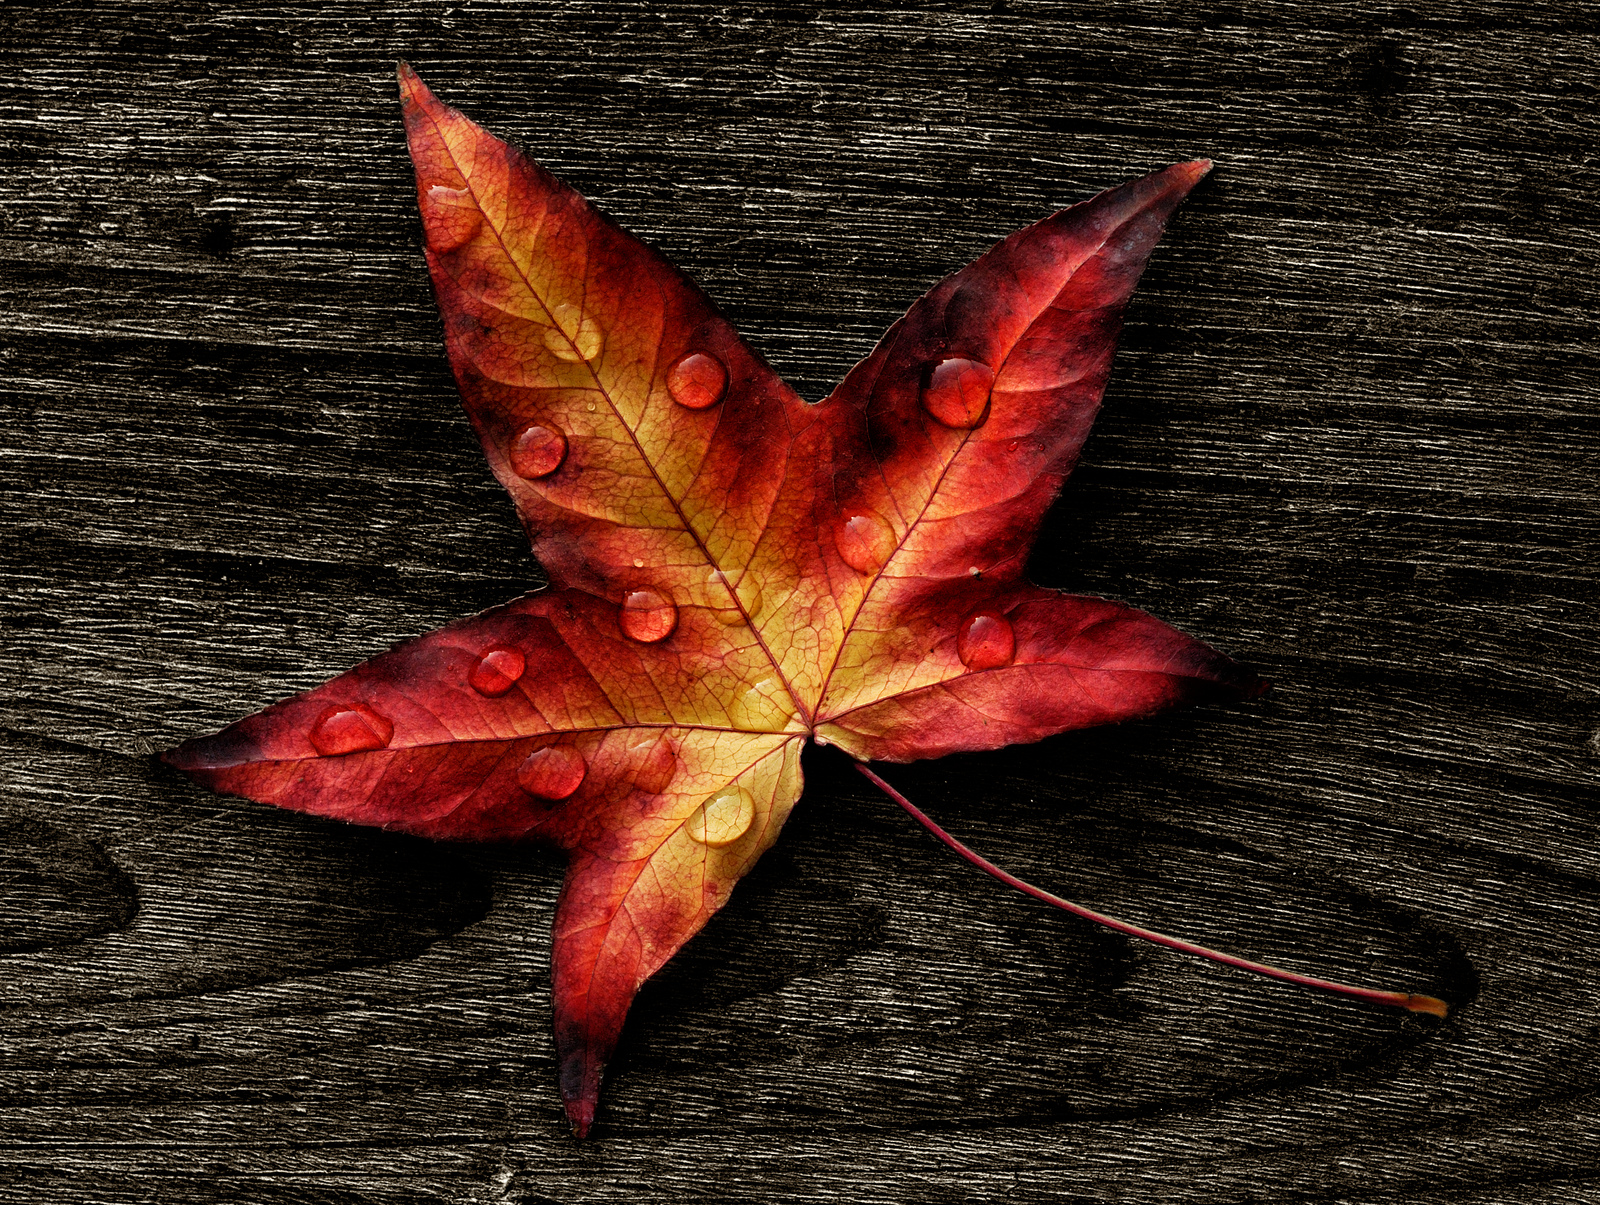 Autumn-leave-on-wooden-background-toutouke-artistwebsites-com-featured-leave-toutouke-a-y-wallpaper-wp4003130